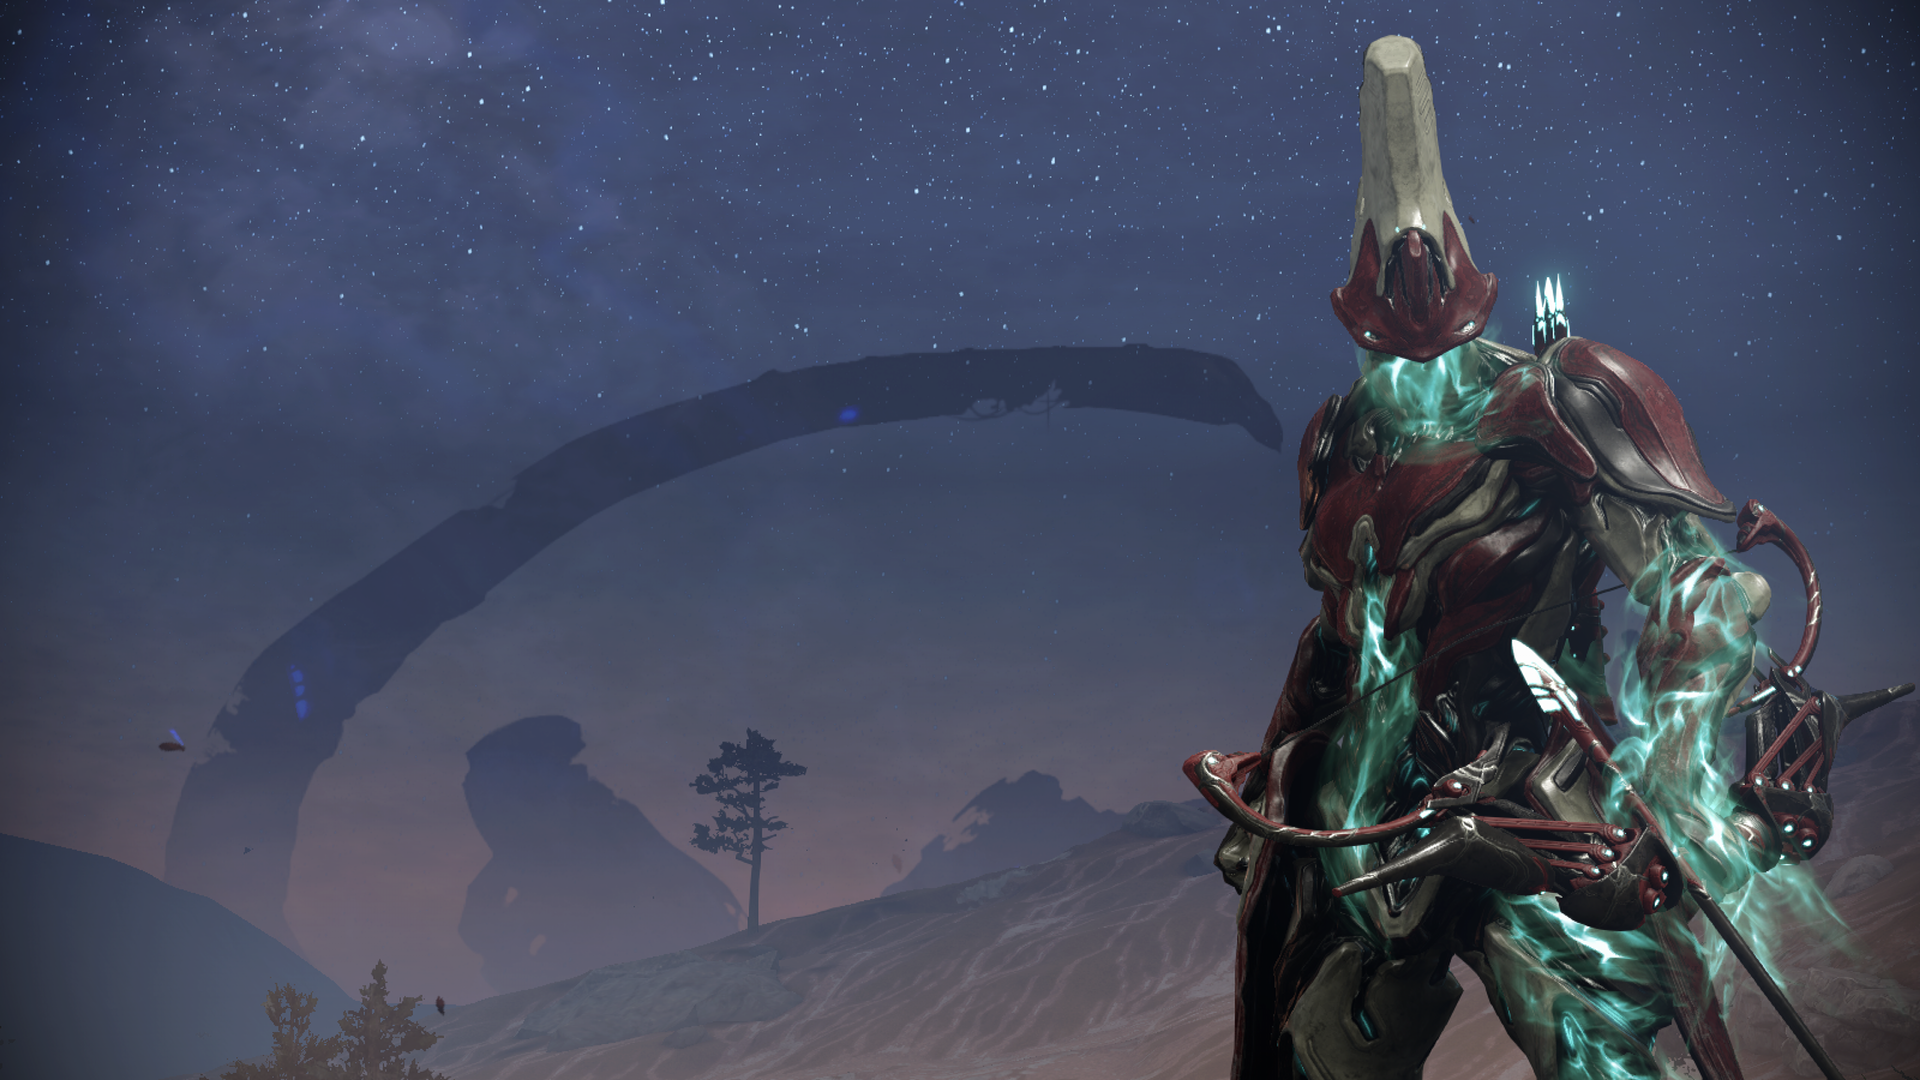 Revenant Terry Fashionframe Fandom Revenant warframe has just dropped via the mask of the revenant update, players were hyped about the frame and i was away at the same time. revenant terry fashionframe fandom